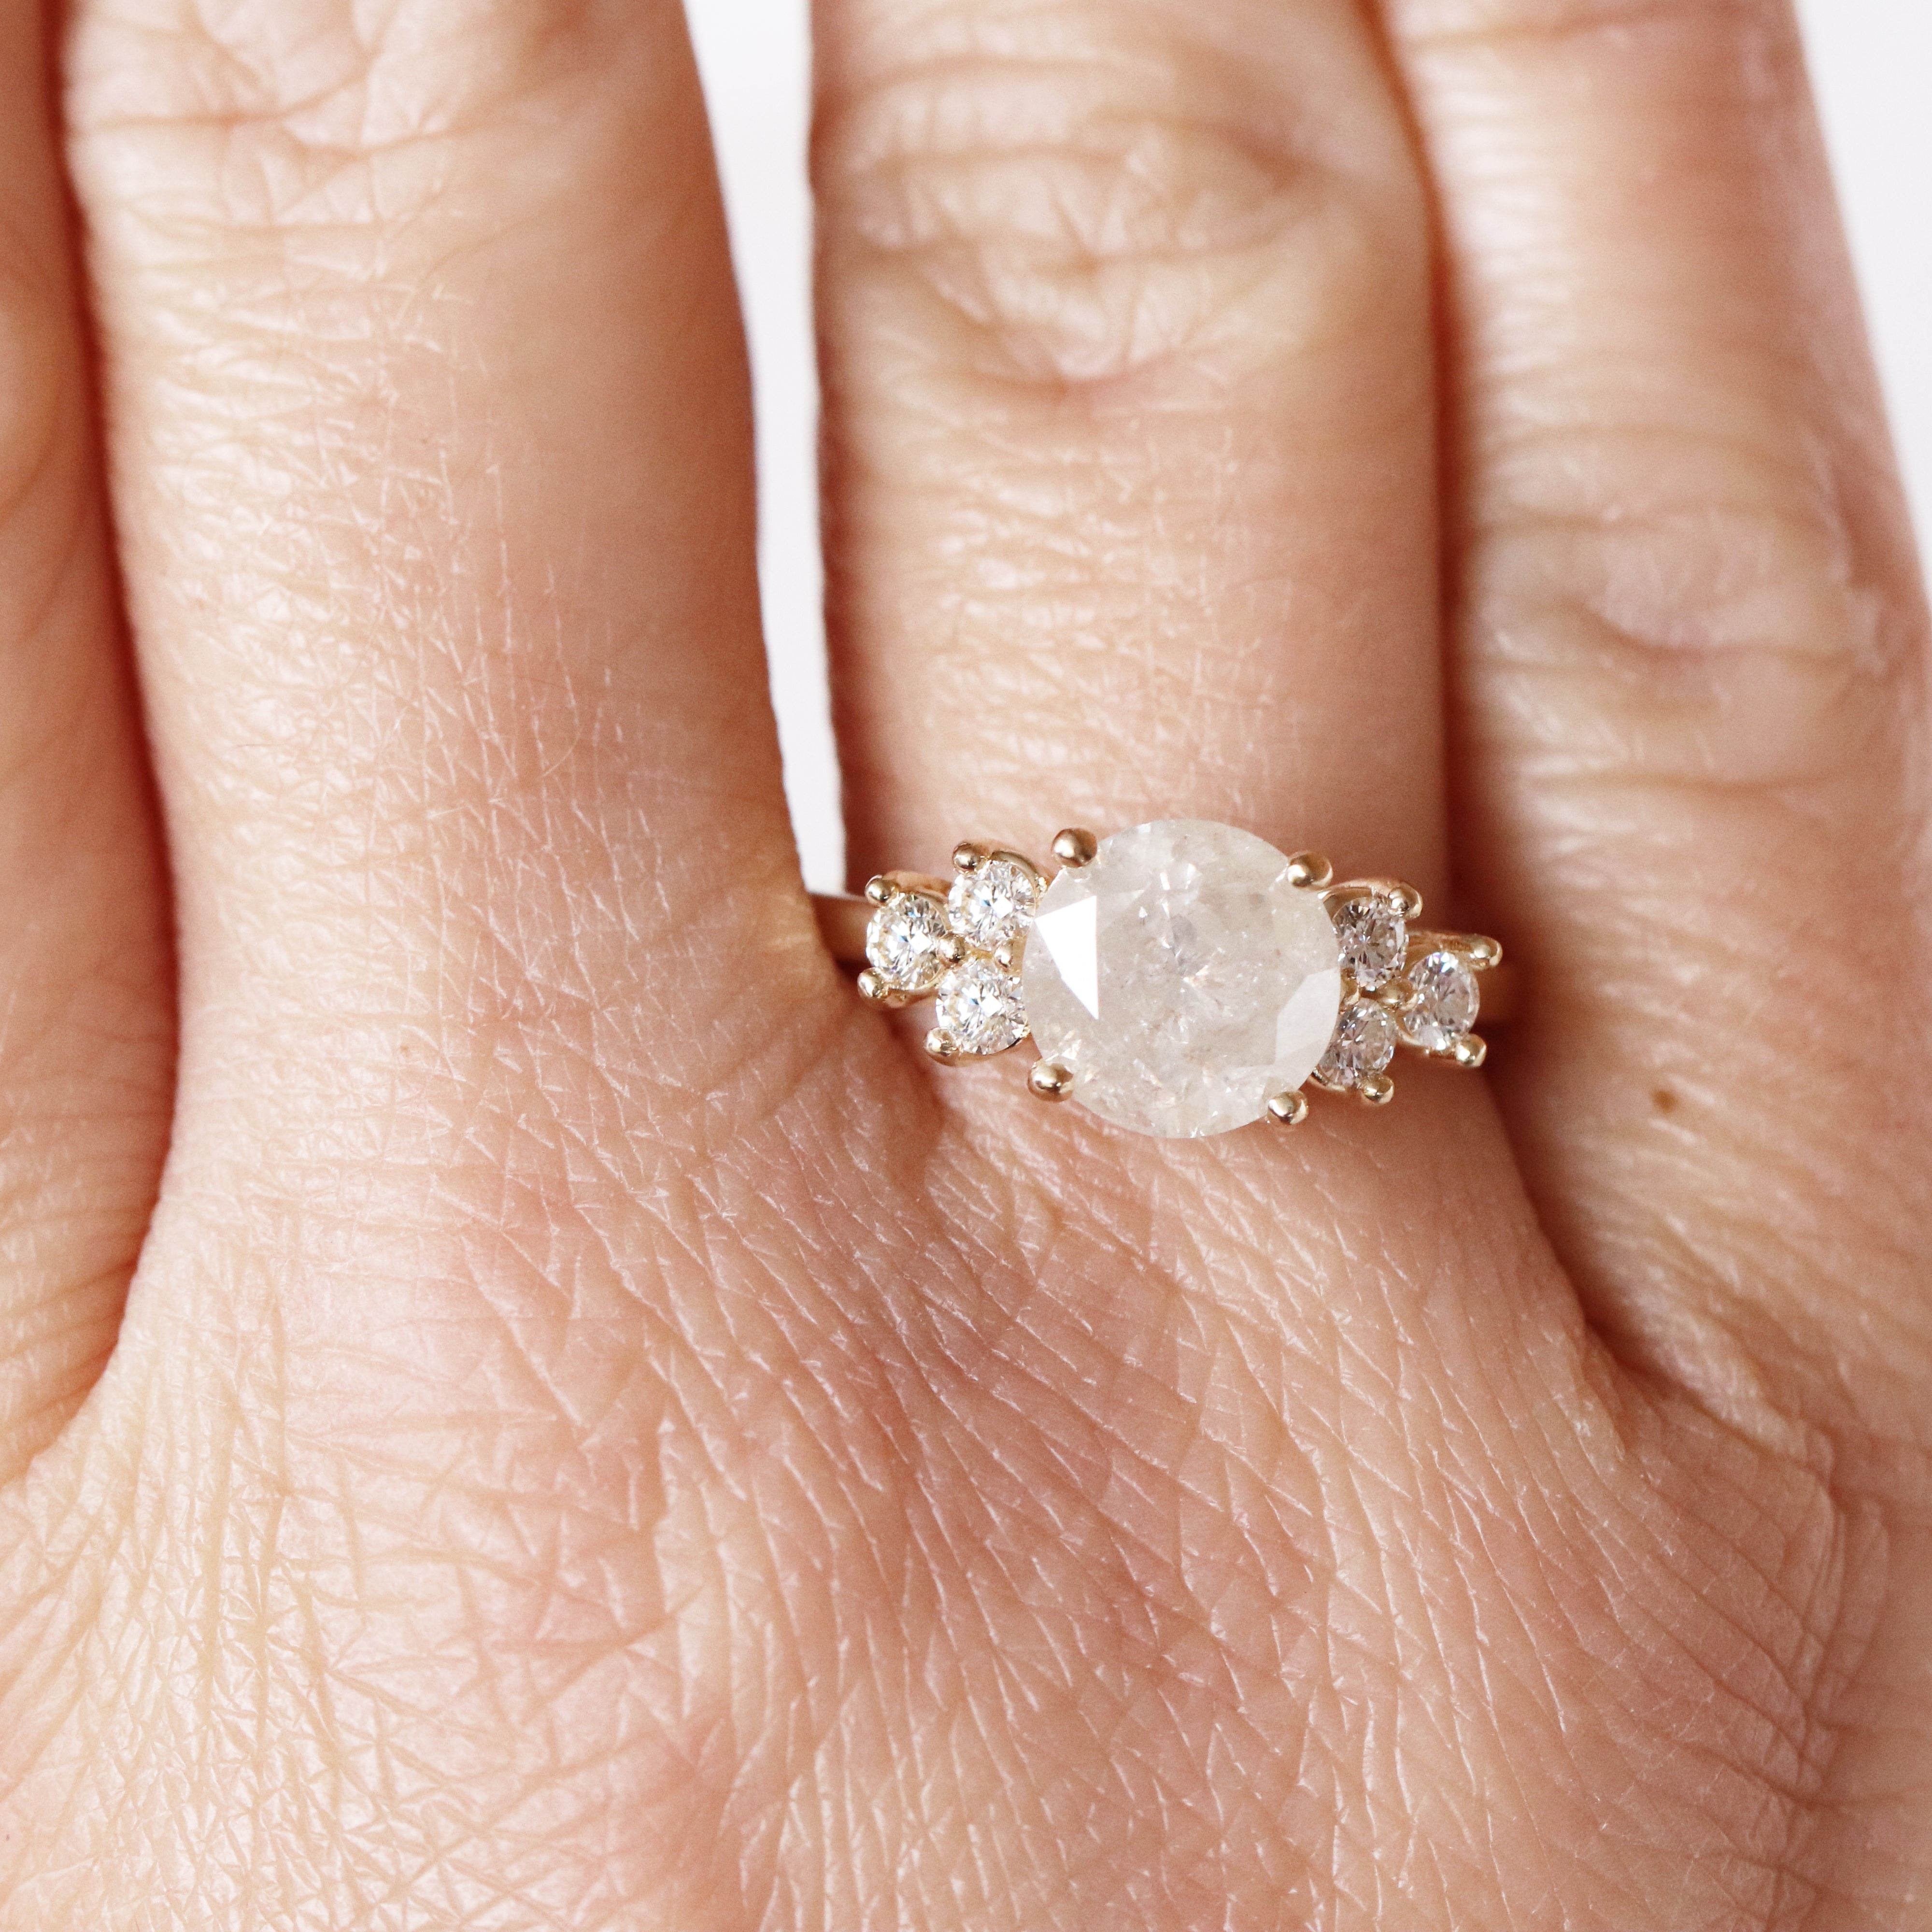 Veragene Ring with a 2.58 Carat Celestial Diamond in 14k Yellow Gold - Ready to Size and Ship - Salt & Pepper Celestial Diamond Engagement Rings and Wedding Bands  by Midwinter Co.